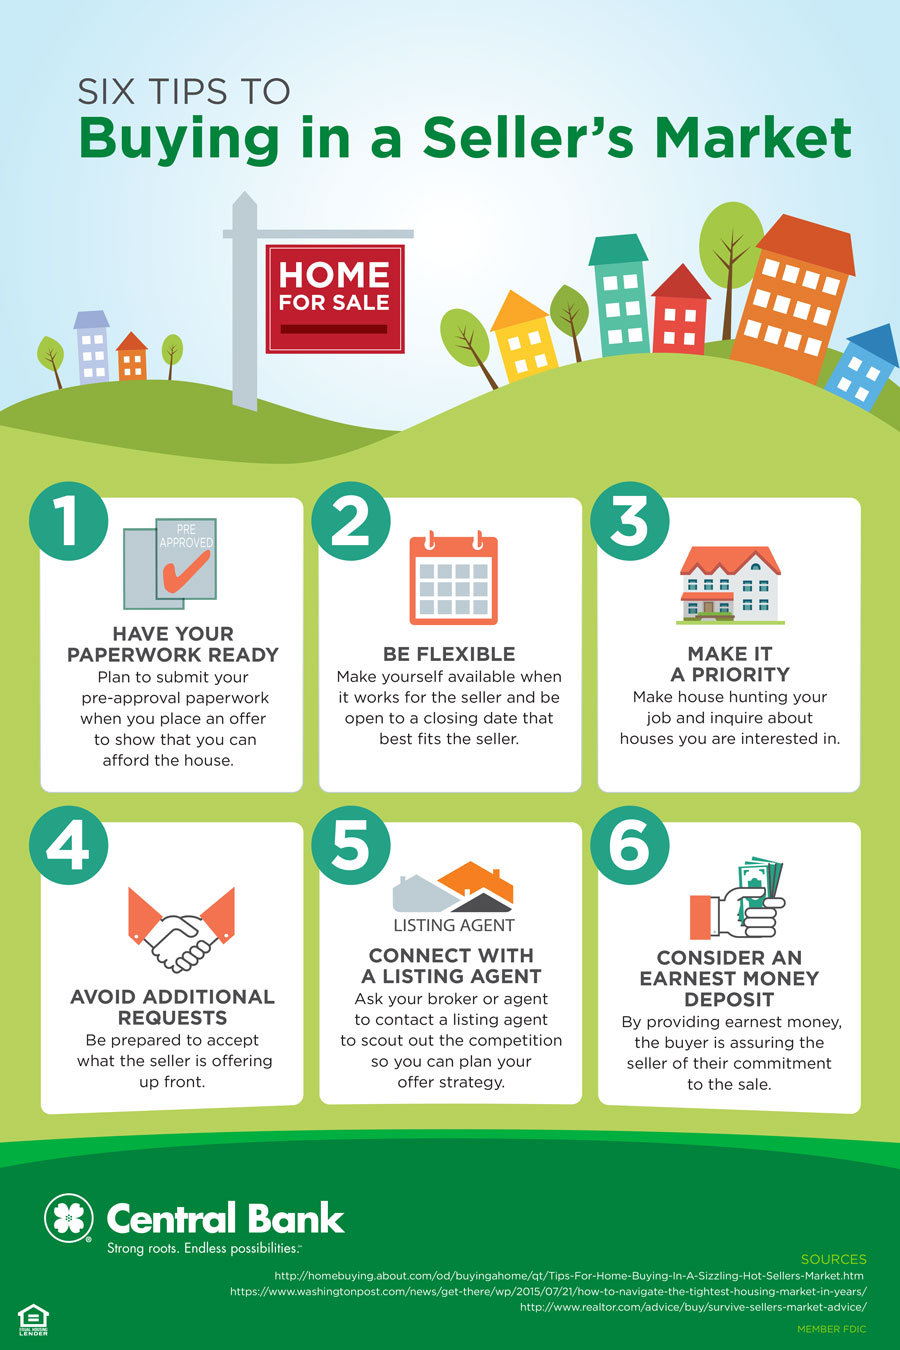 An infographic showing six tips to buying in a seller's market